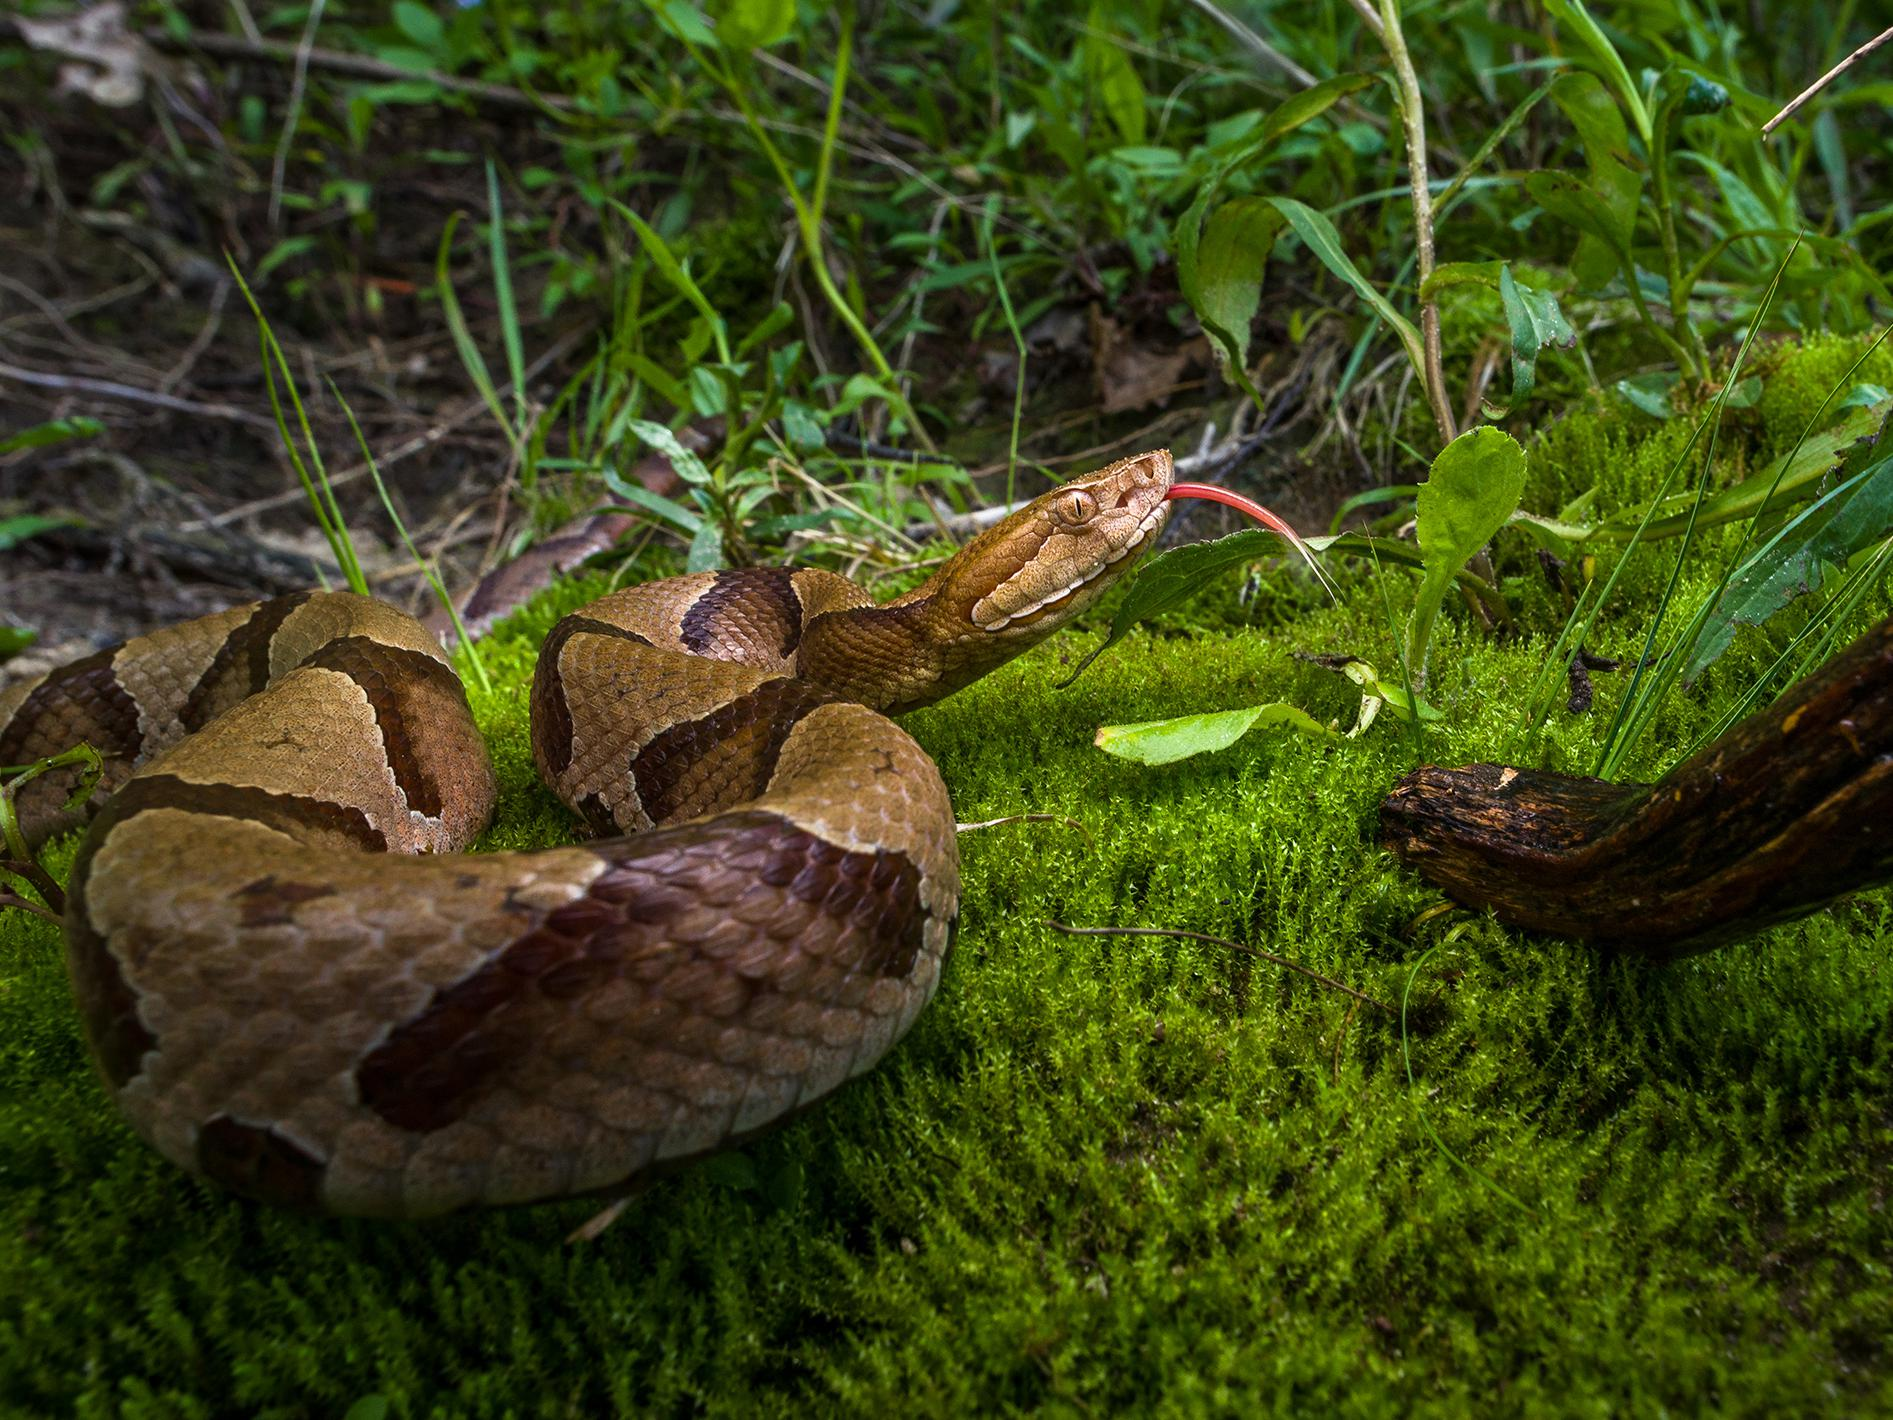 Copperheads, such as this one, are among the most common venomous snakes in Mississippi. (Photo courtesy of Robert Lewis)